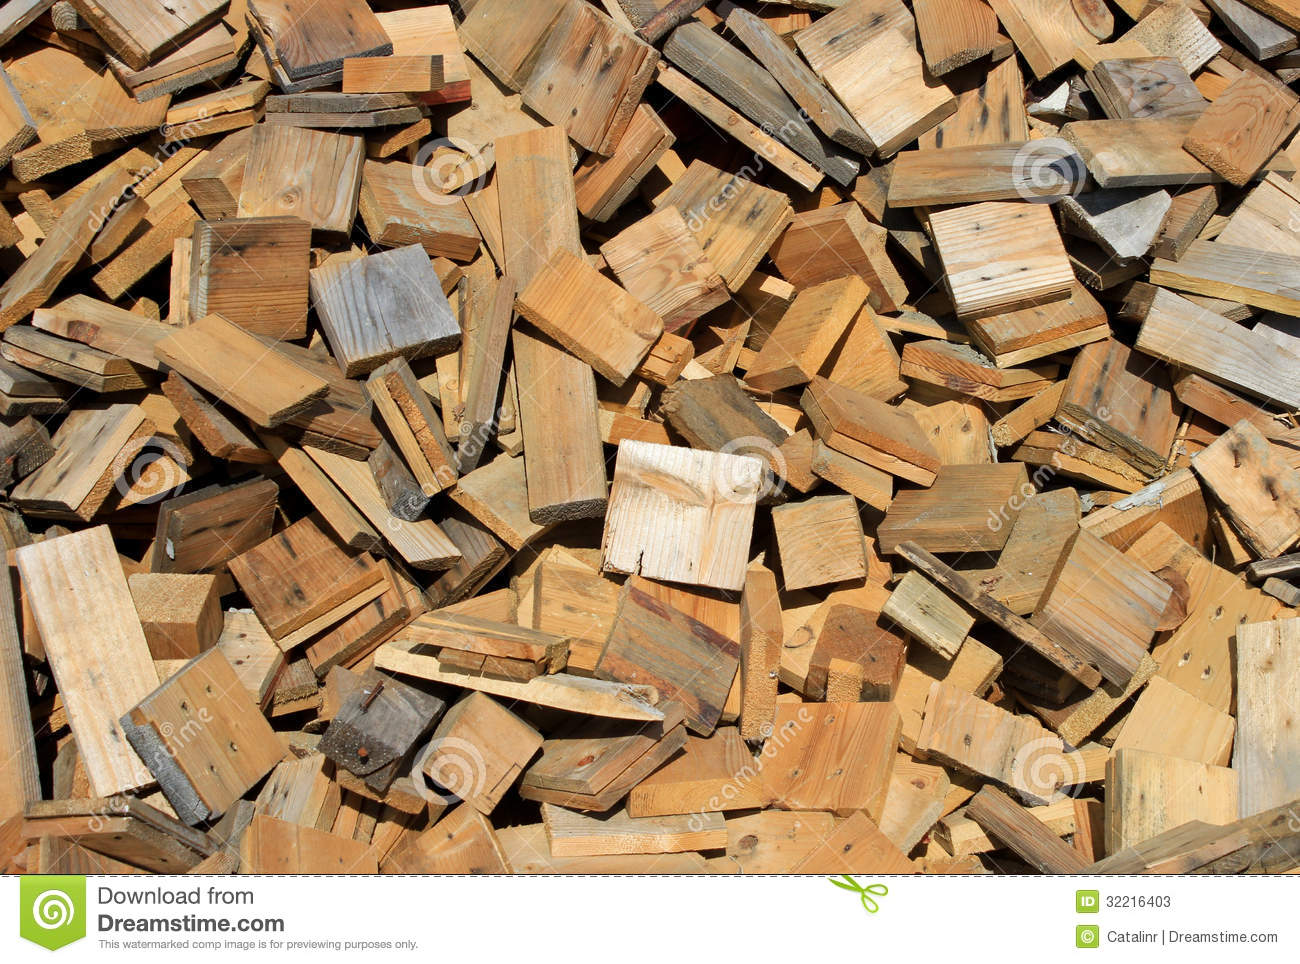 Scrap Lumber Stock Photos   Image  32216403